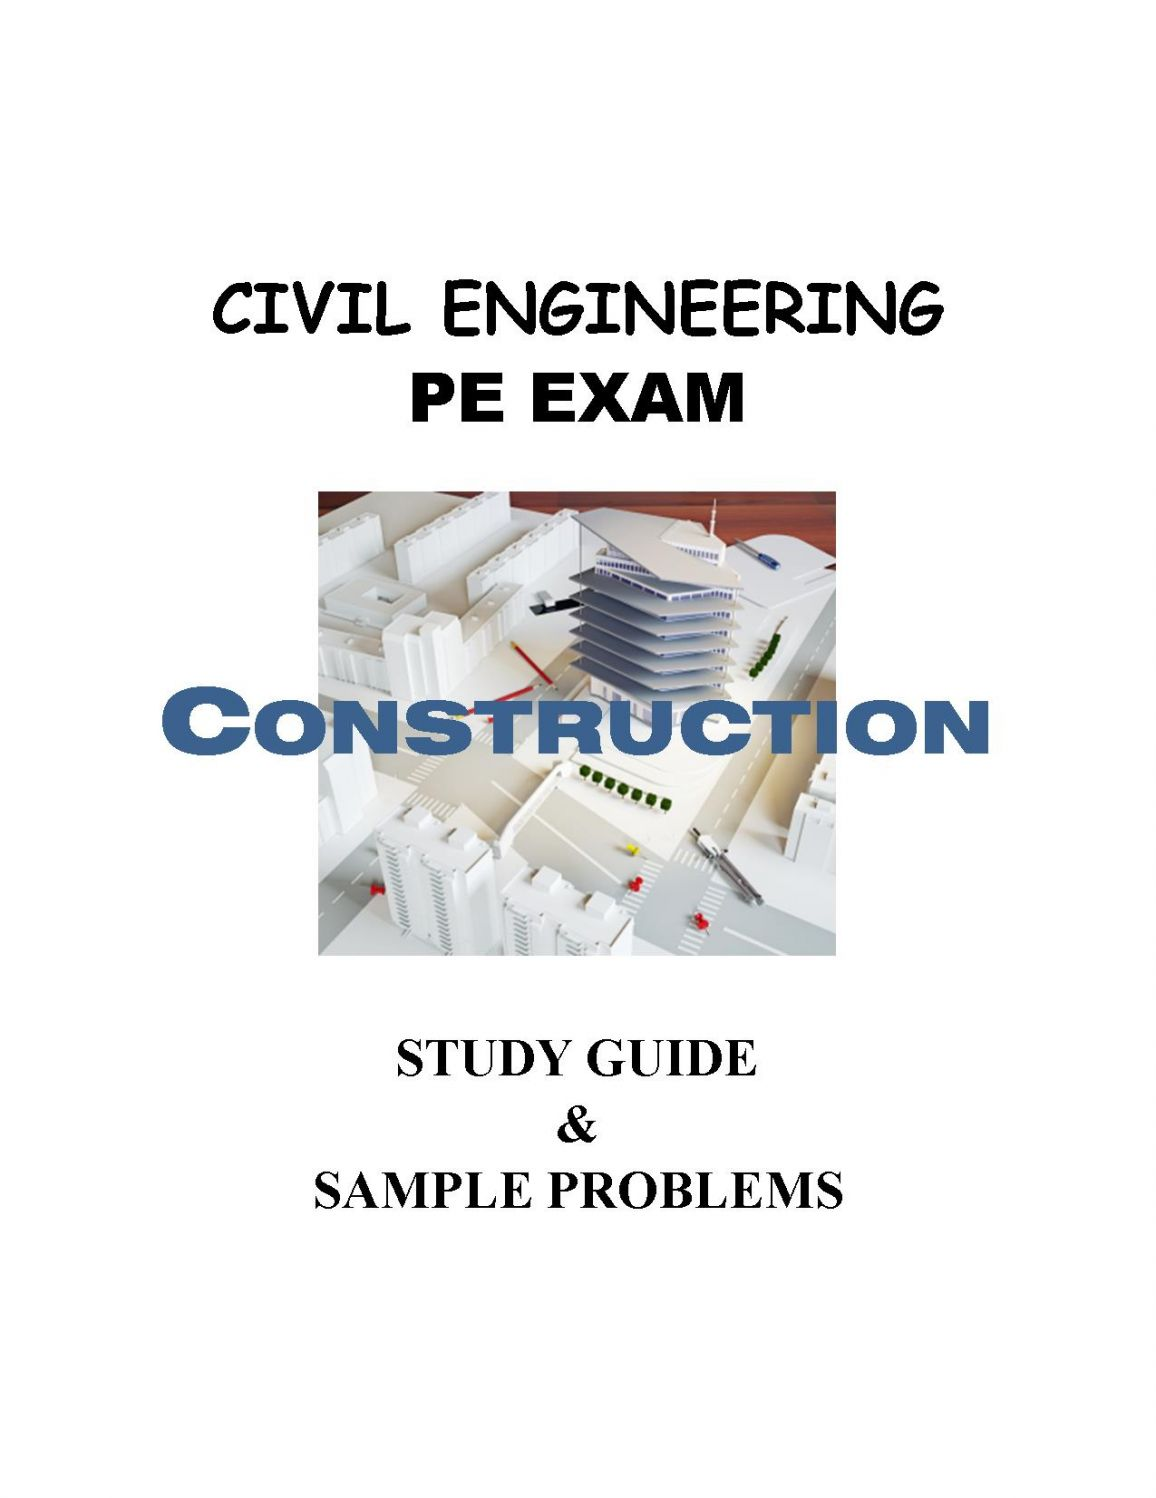 [PDF] Custodian engineer test study guide - read & download